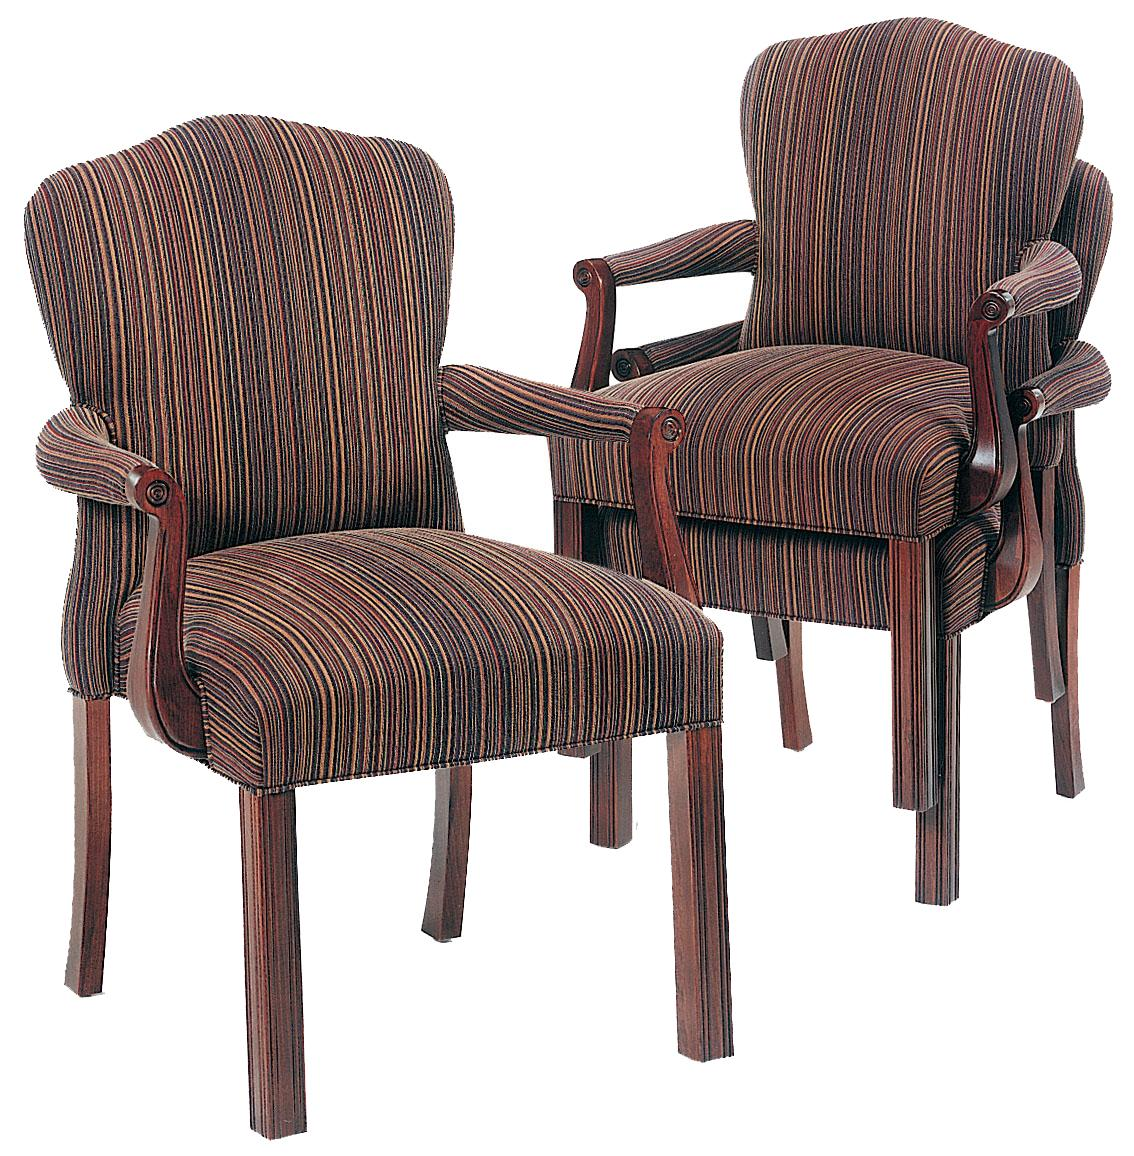 fairfield chair company reviews zebra high heel chairs elegantly upholstered stacking